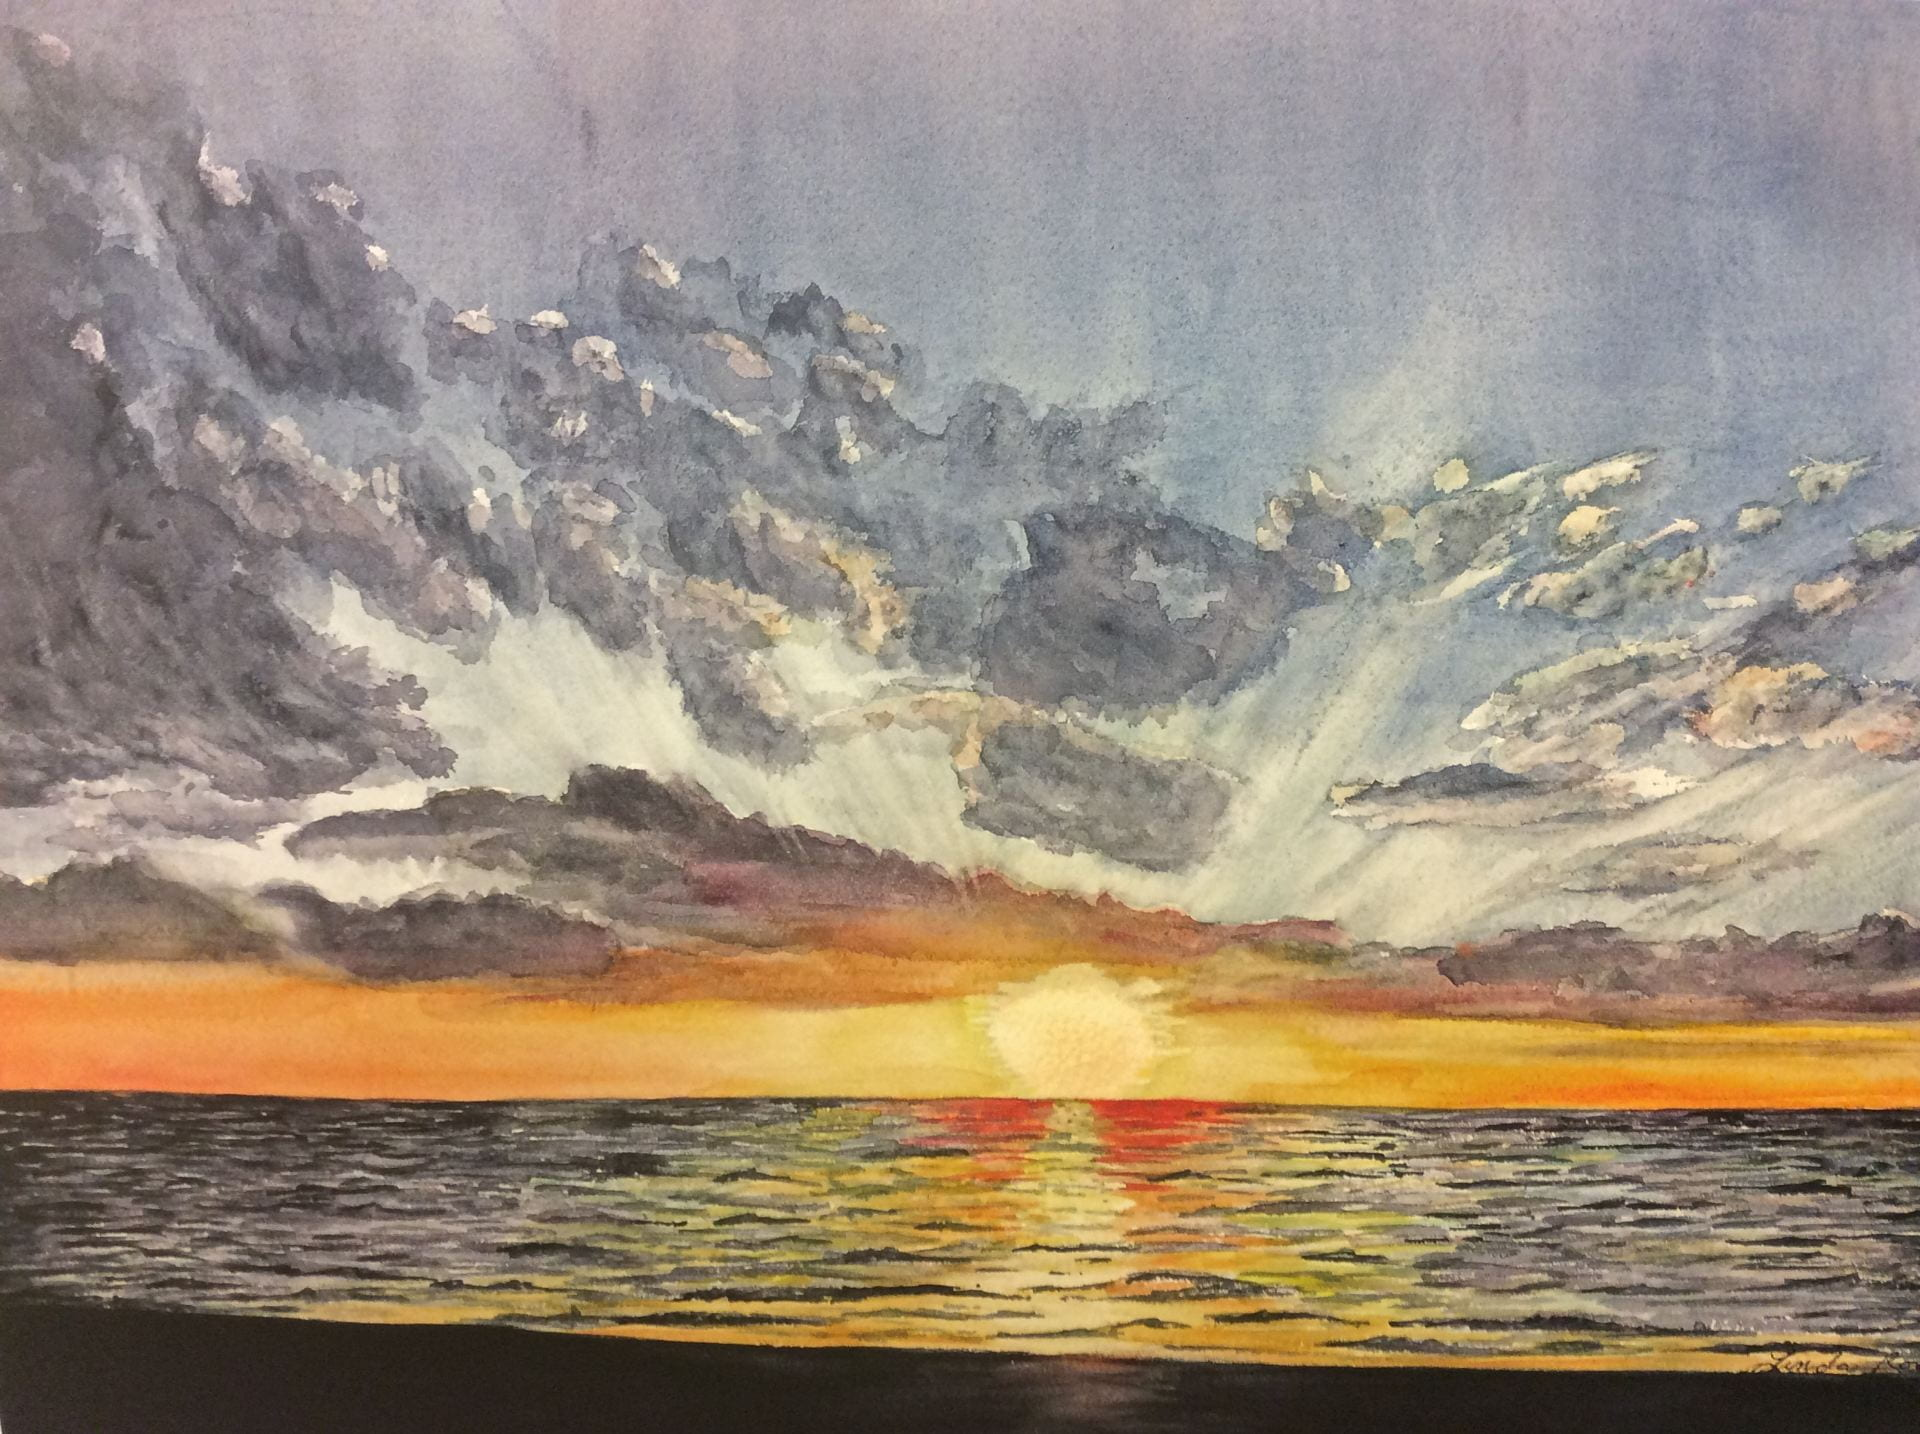 Painting created by by Linda Rose titled, Florida Sunset